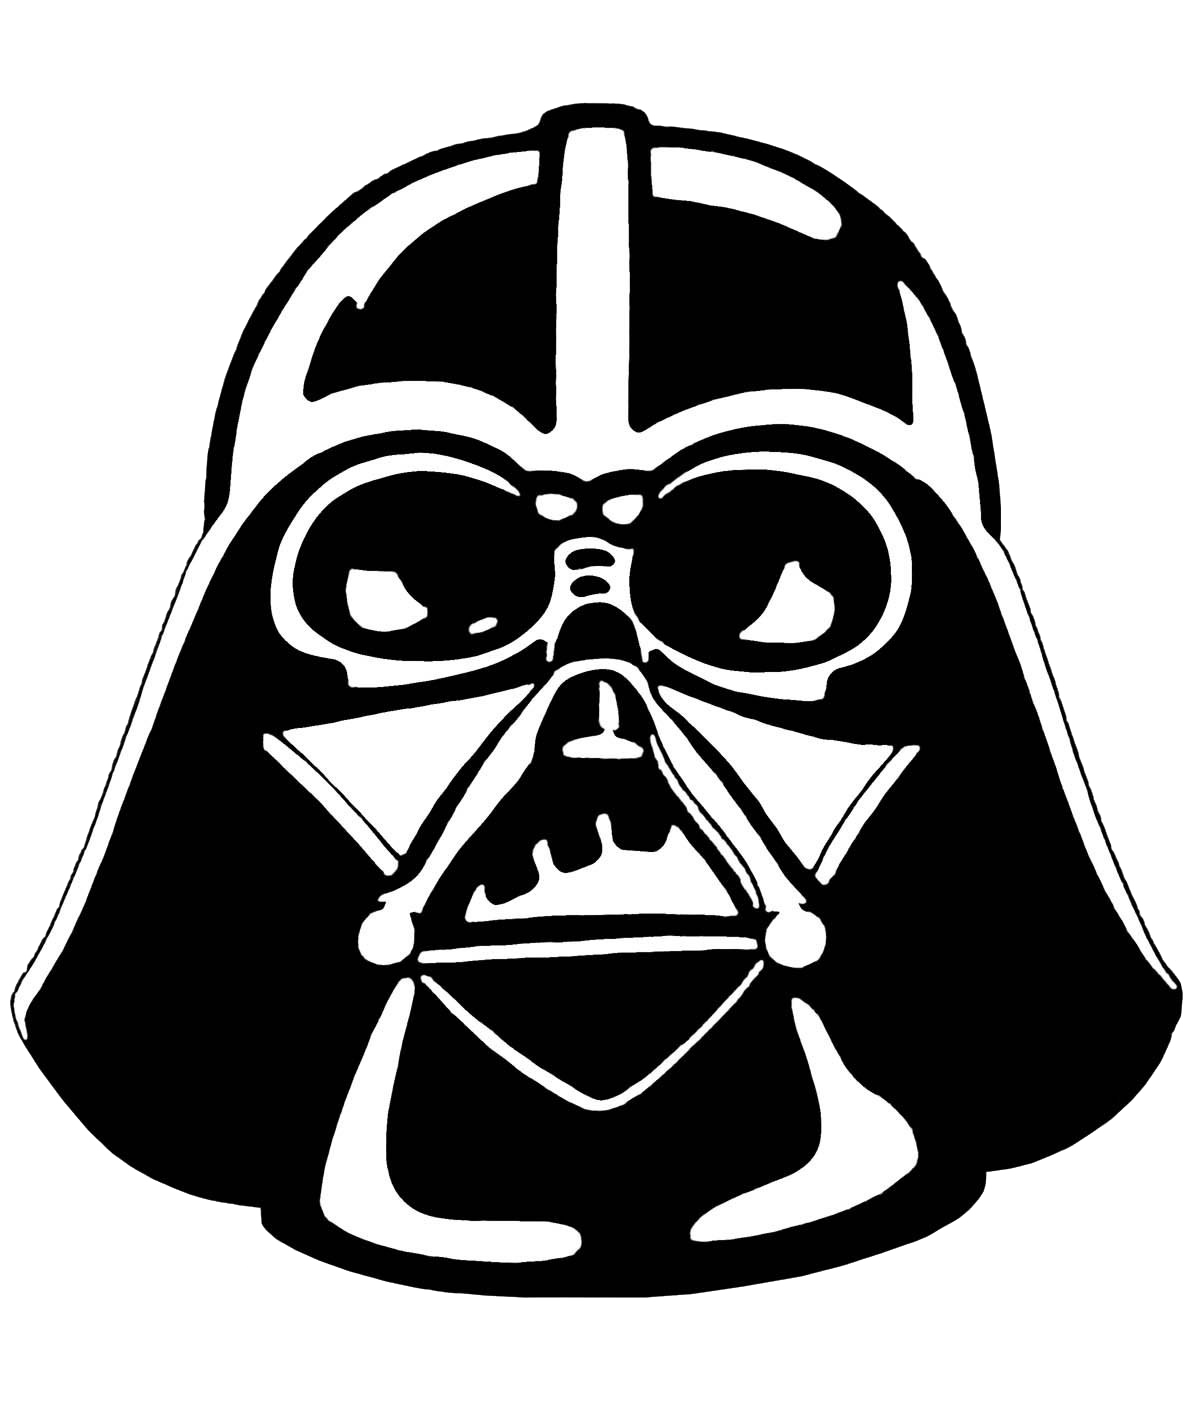 Star Wars Clipart-Clipartlook.com-1192-Star Wars Clipart-Clipartlook.com-1192-1